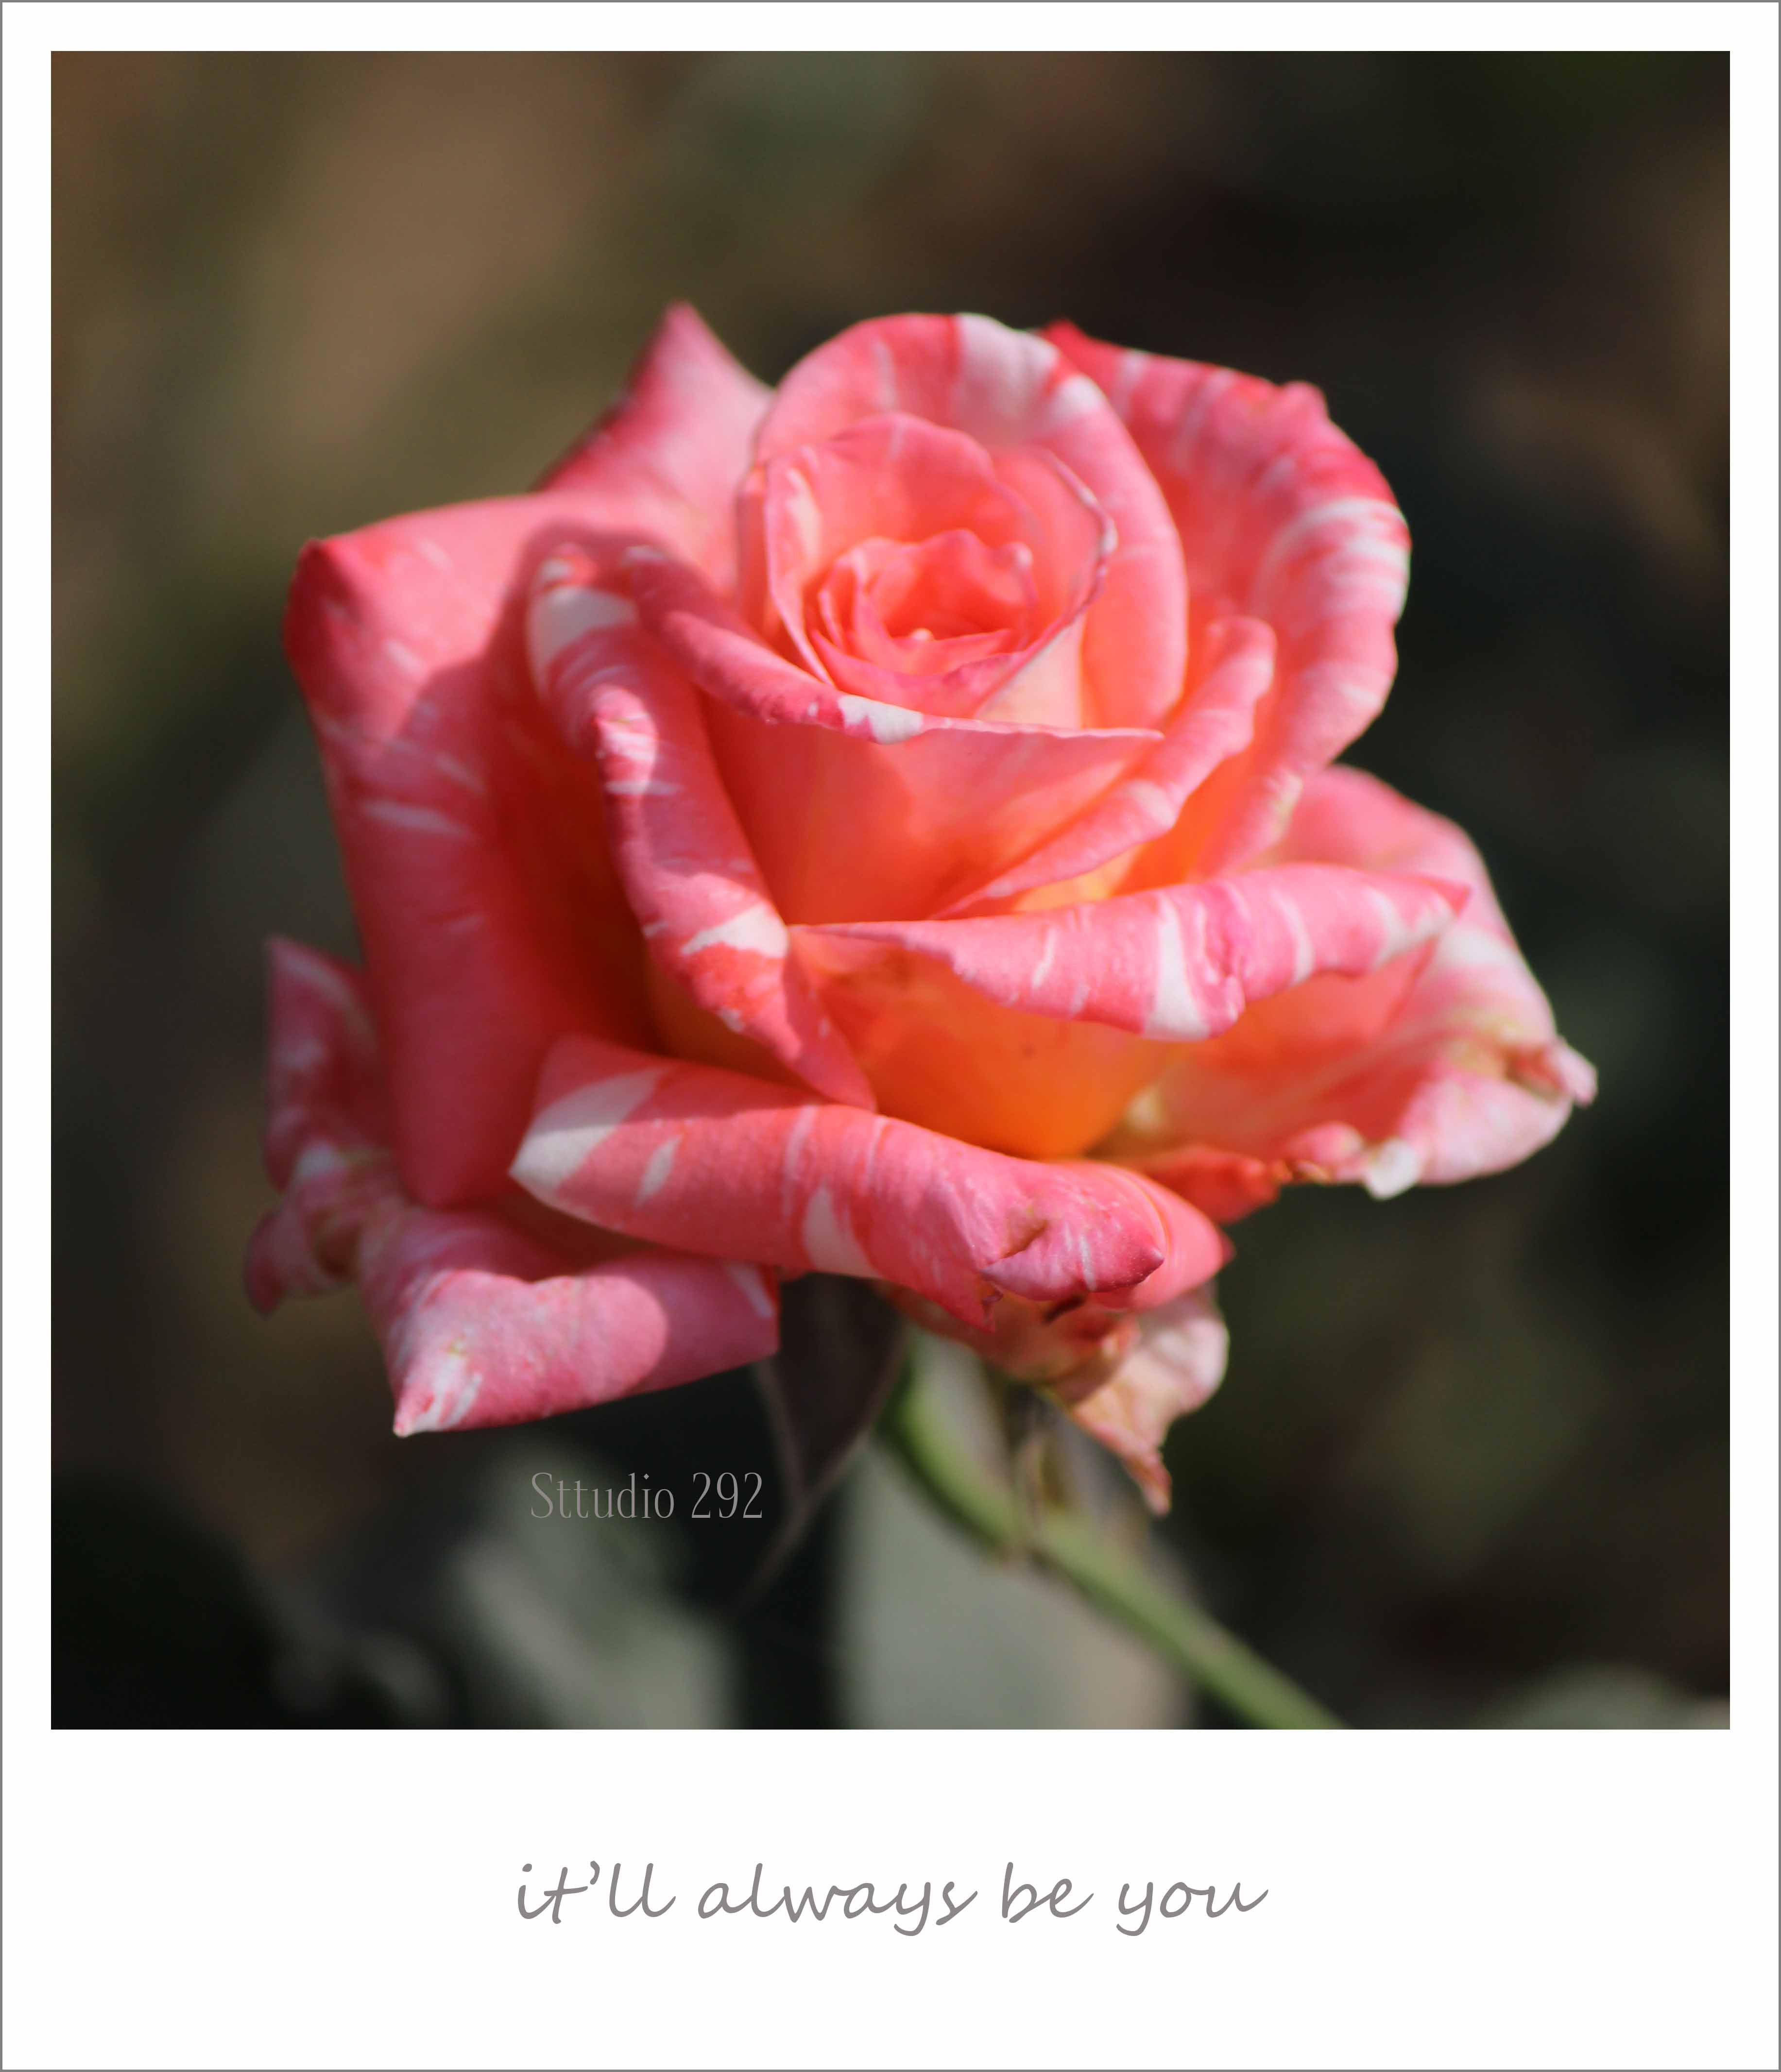 Love notes love notes with roses roses pictures of roses love notes say it with roses izmirmasajfo